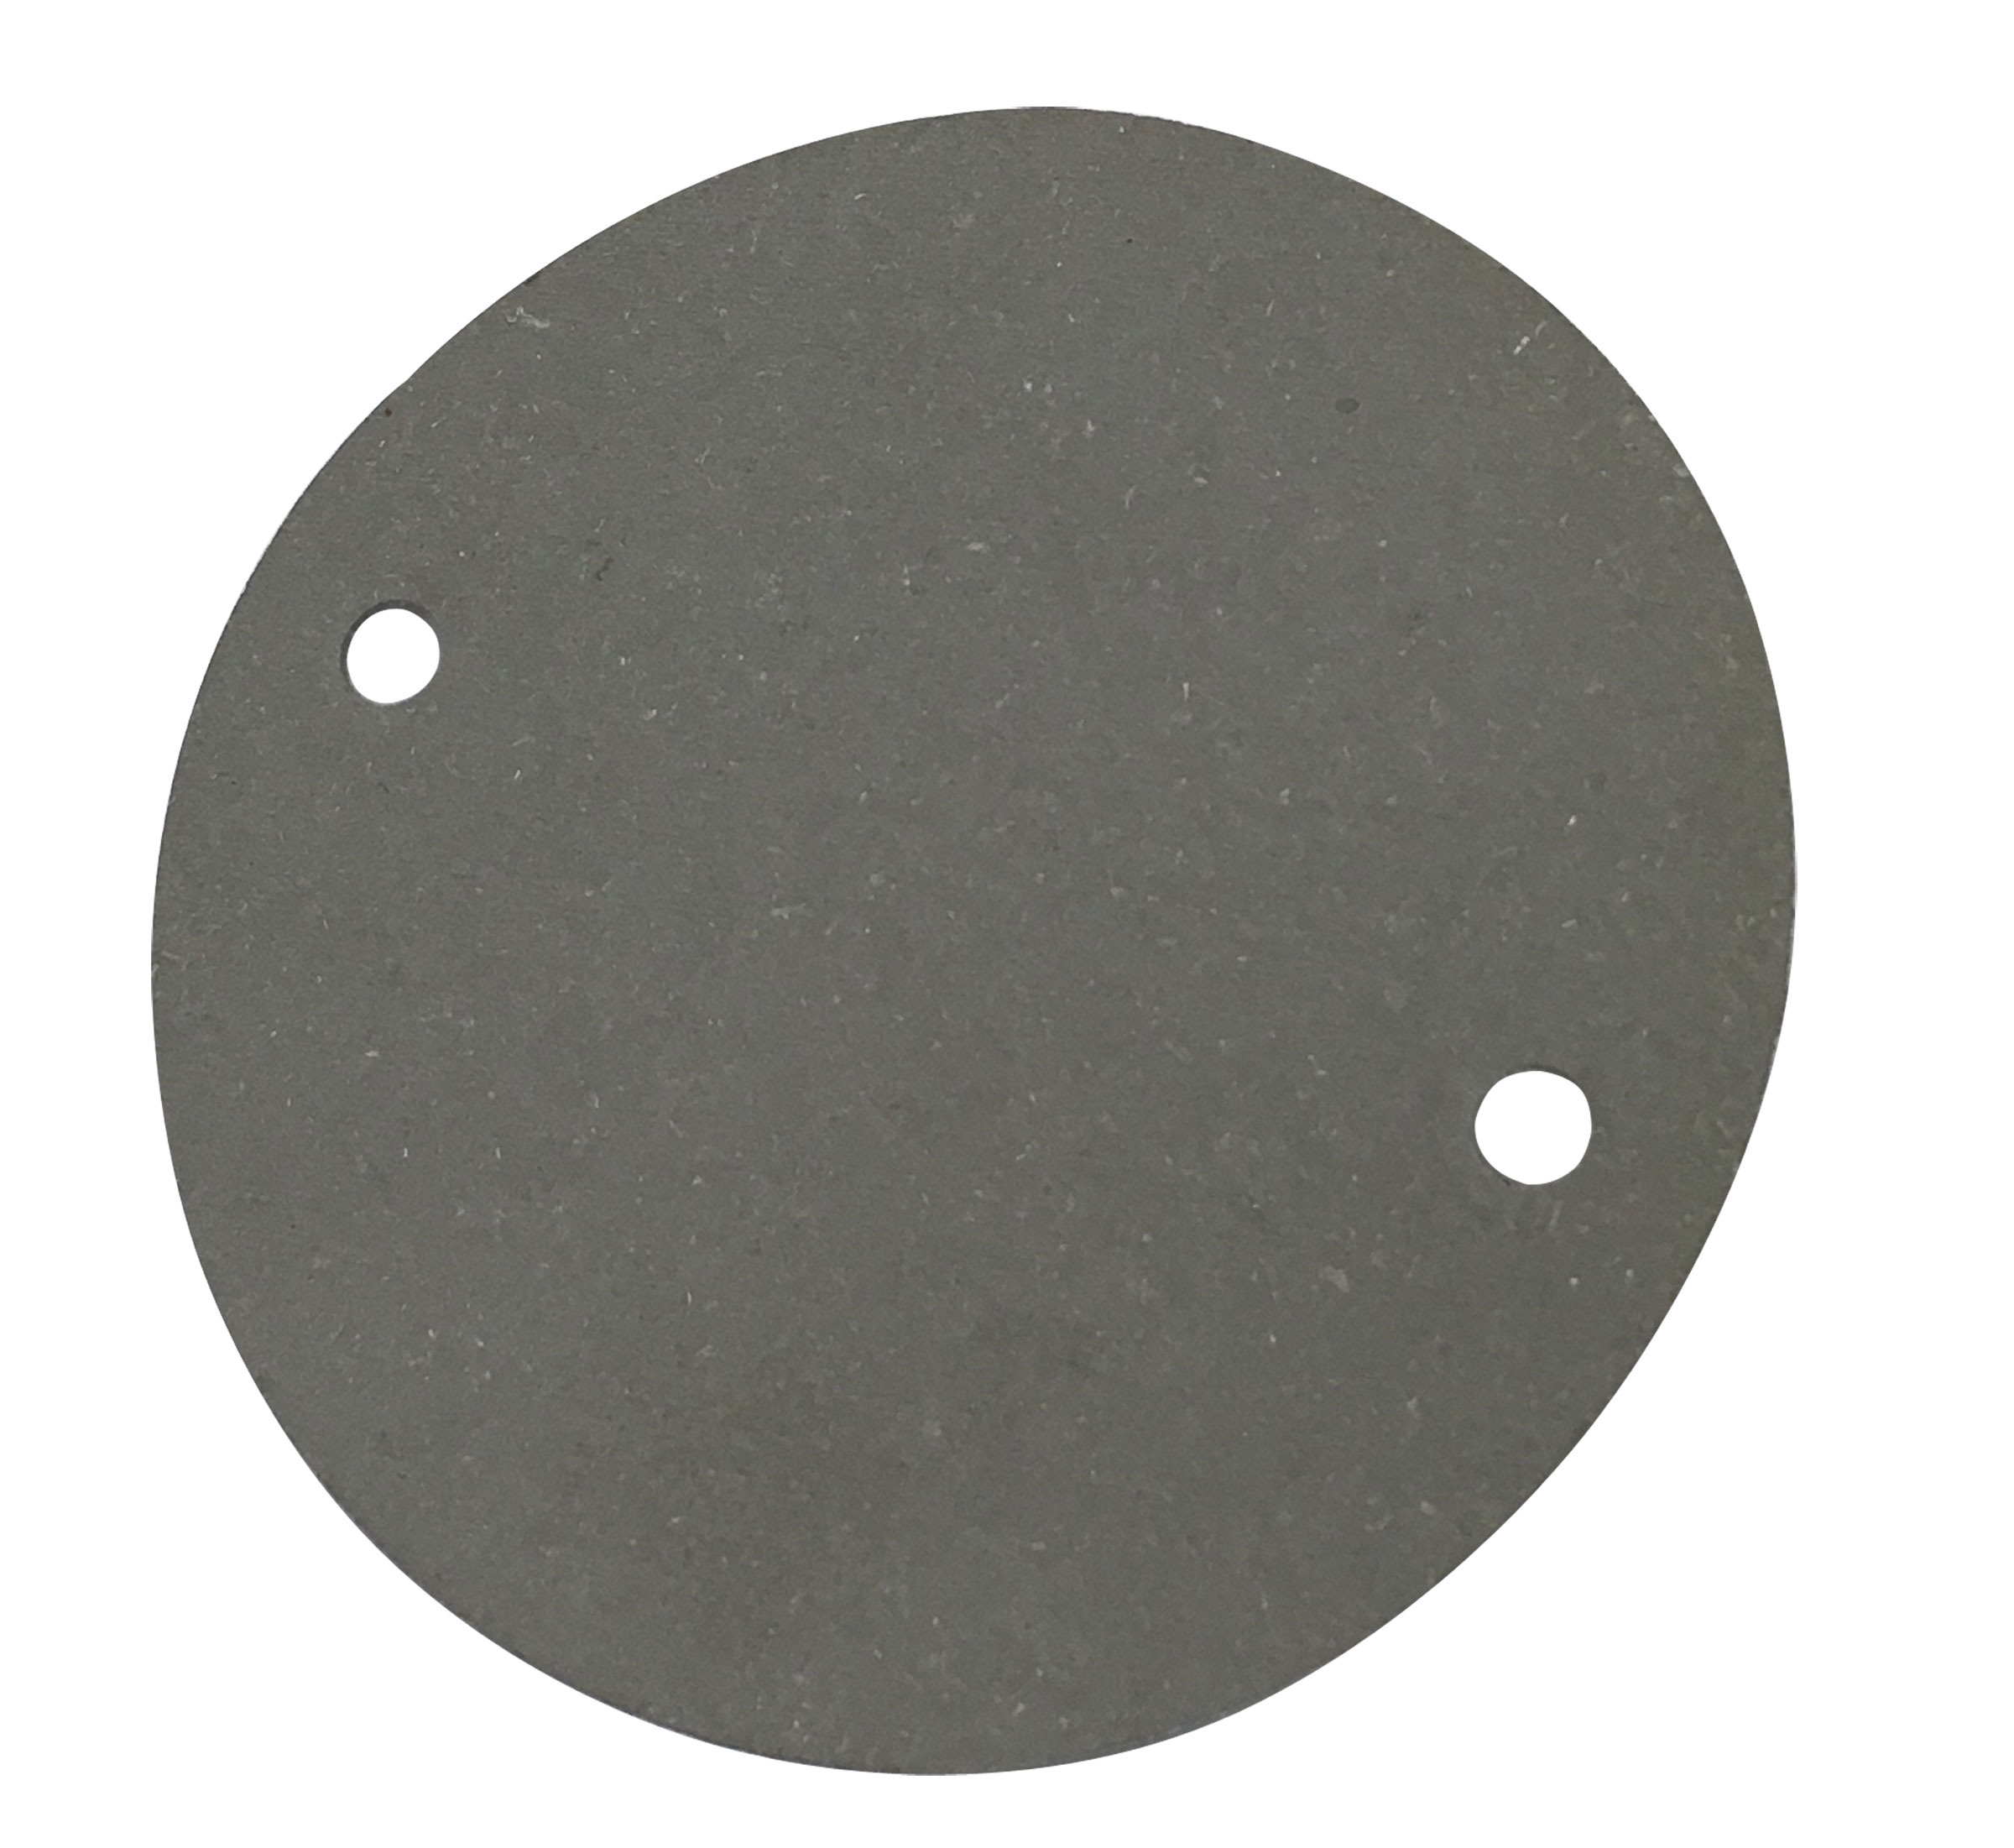 Ignition Timing Cover Gasket (2 Point) for Harley-Davidson | 32591-70 | BMI  Karts And Parts